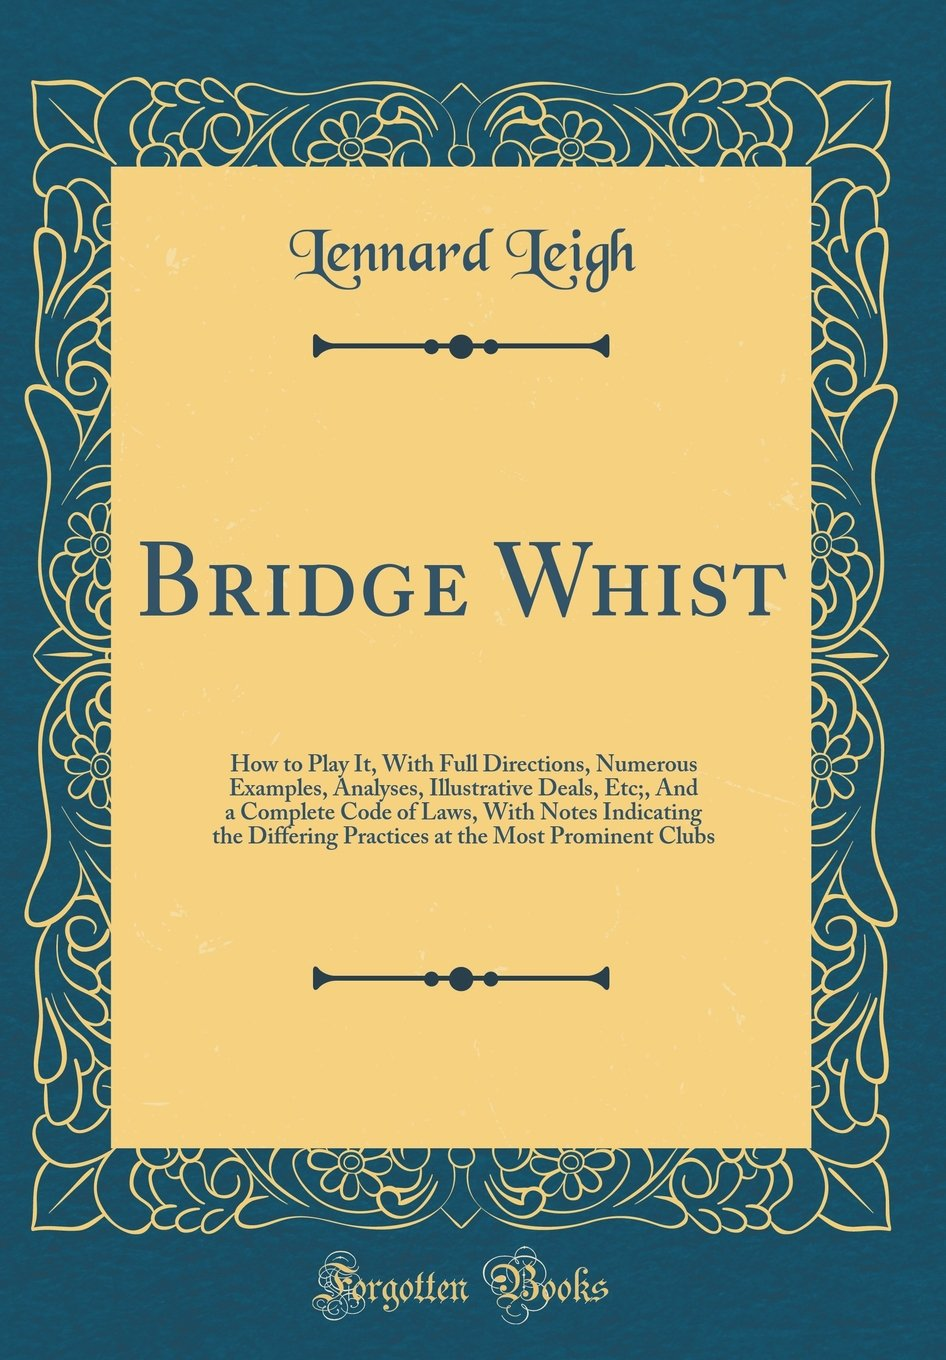 Bridge Whist: How to Play It, With Full Directions, Numerous Examples, Analyses, Illustrative Deals, Etc;, And a Complete Code of Laws, With Notes ... at the Most Prominent Clubs (Classic Reprint) pdf